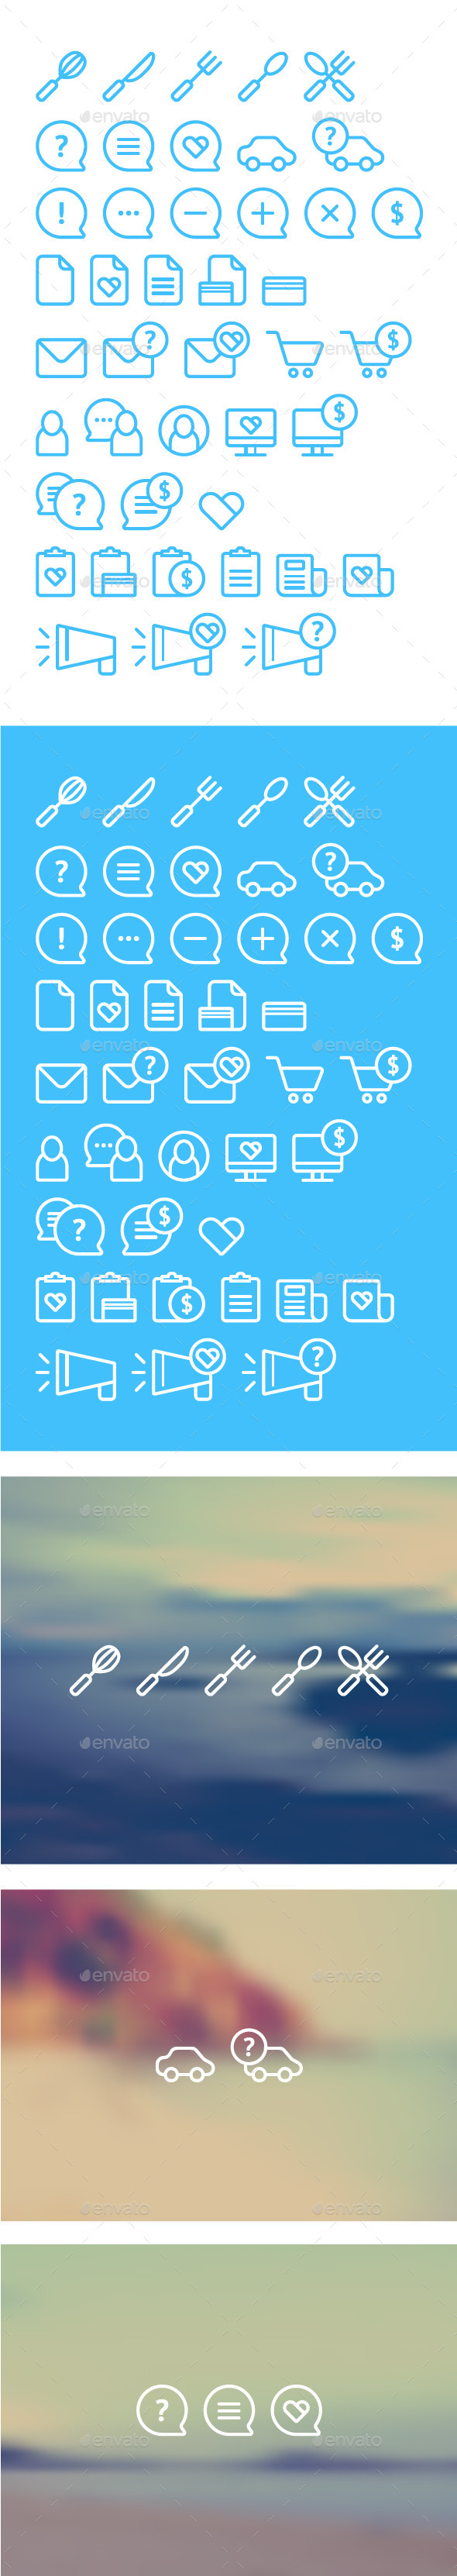 Cleanse Icons Set on Blurred Background - Miscellaneous Vectors